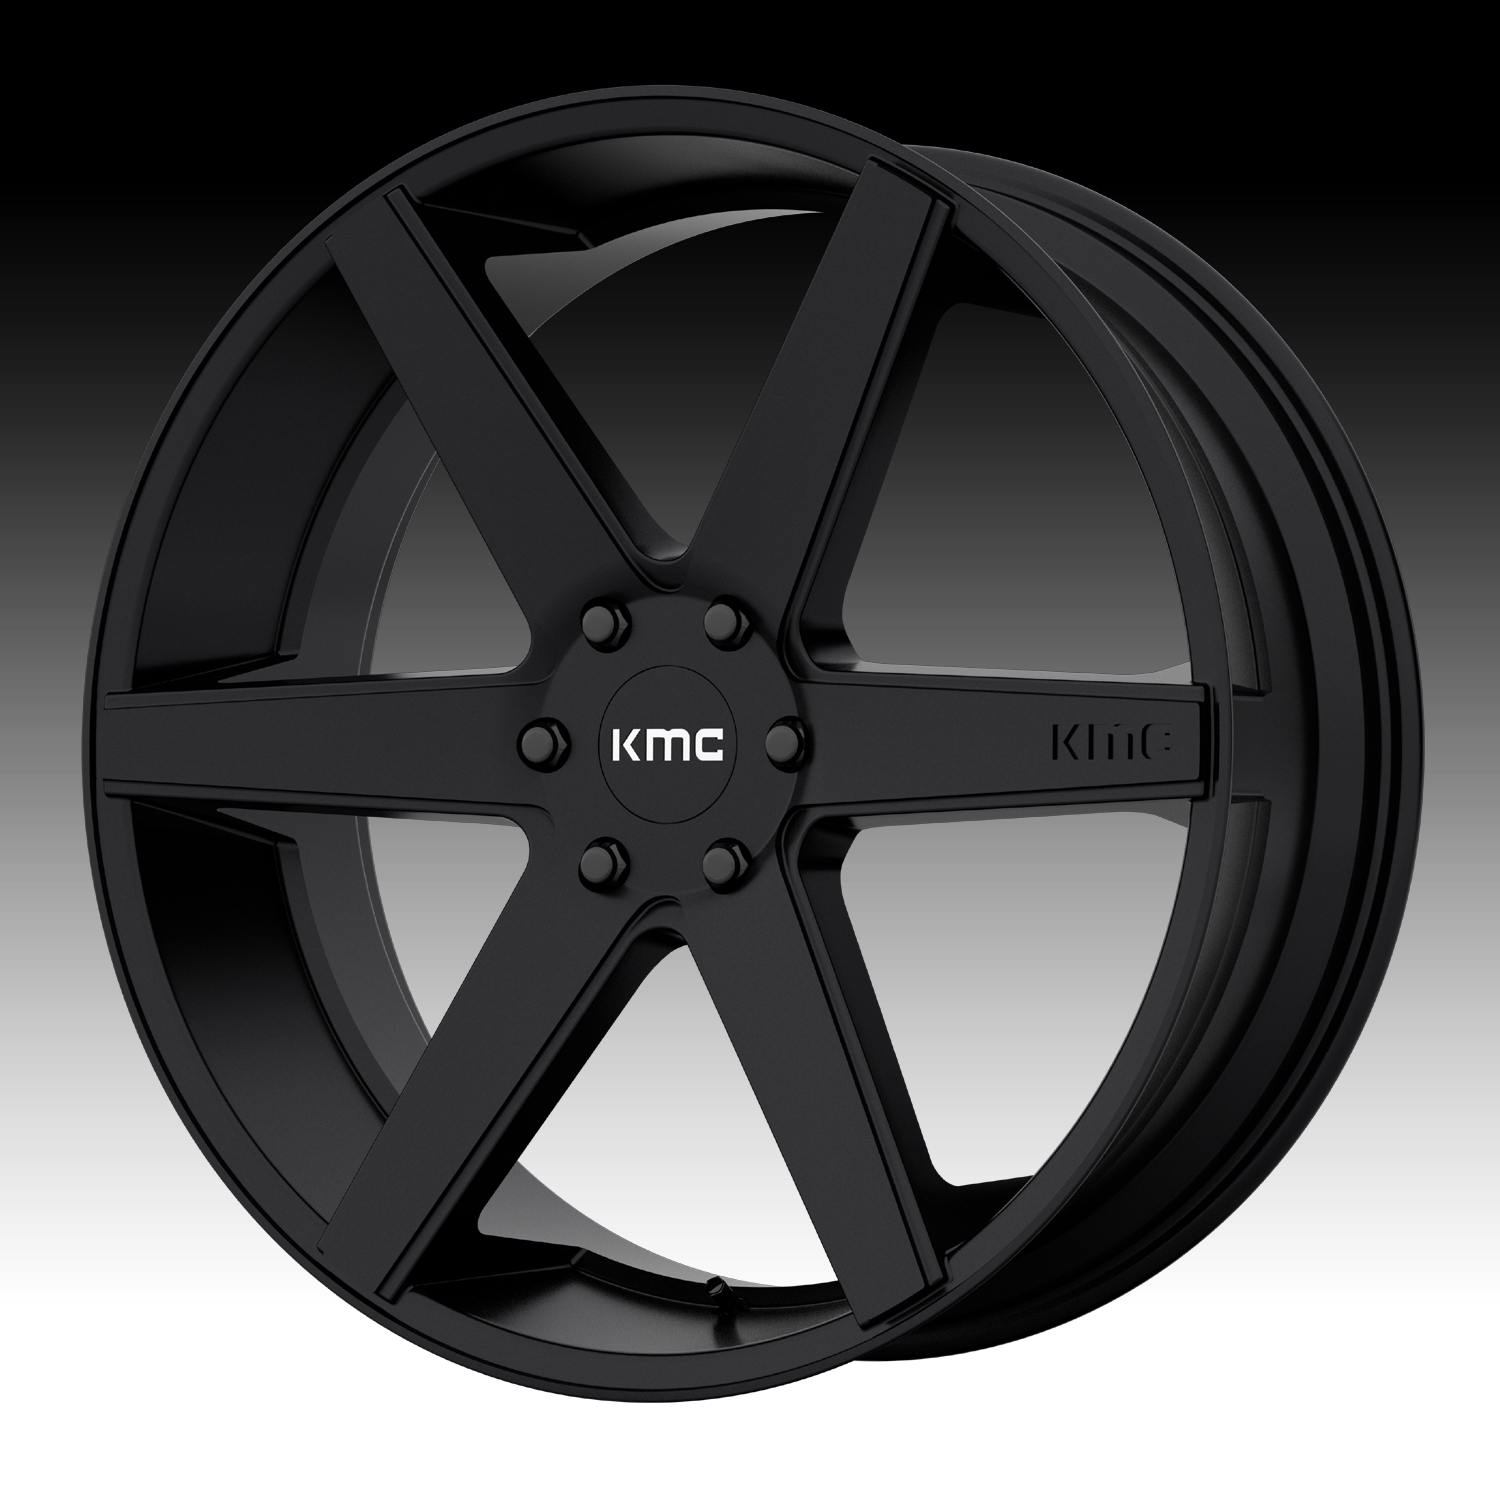 Kmc Km704 District Truck Satin Black Custom Wheels Rims